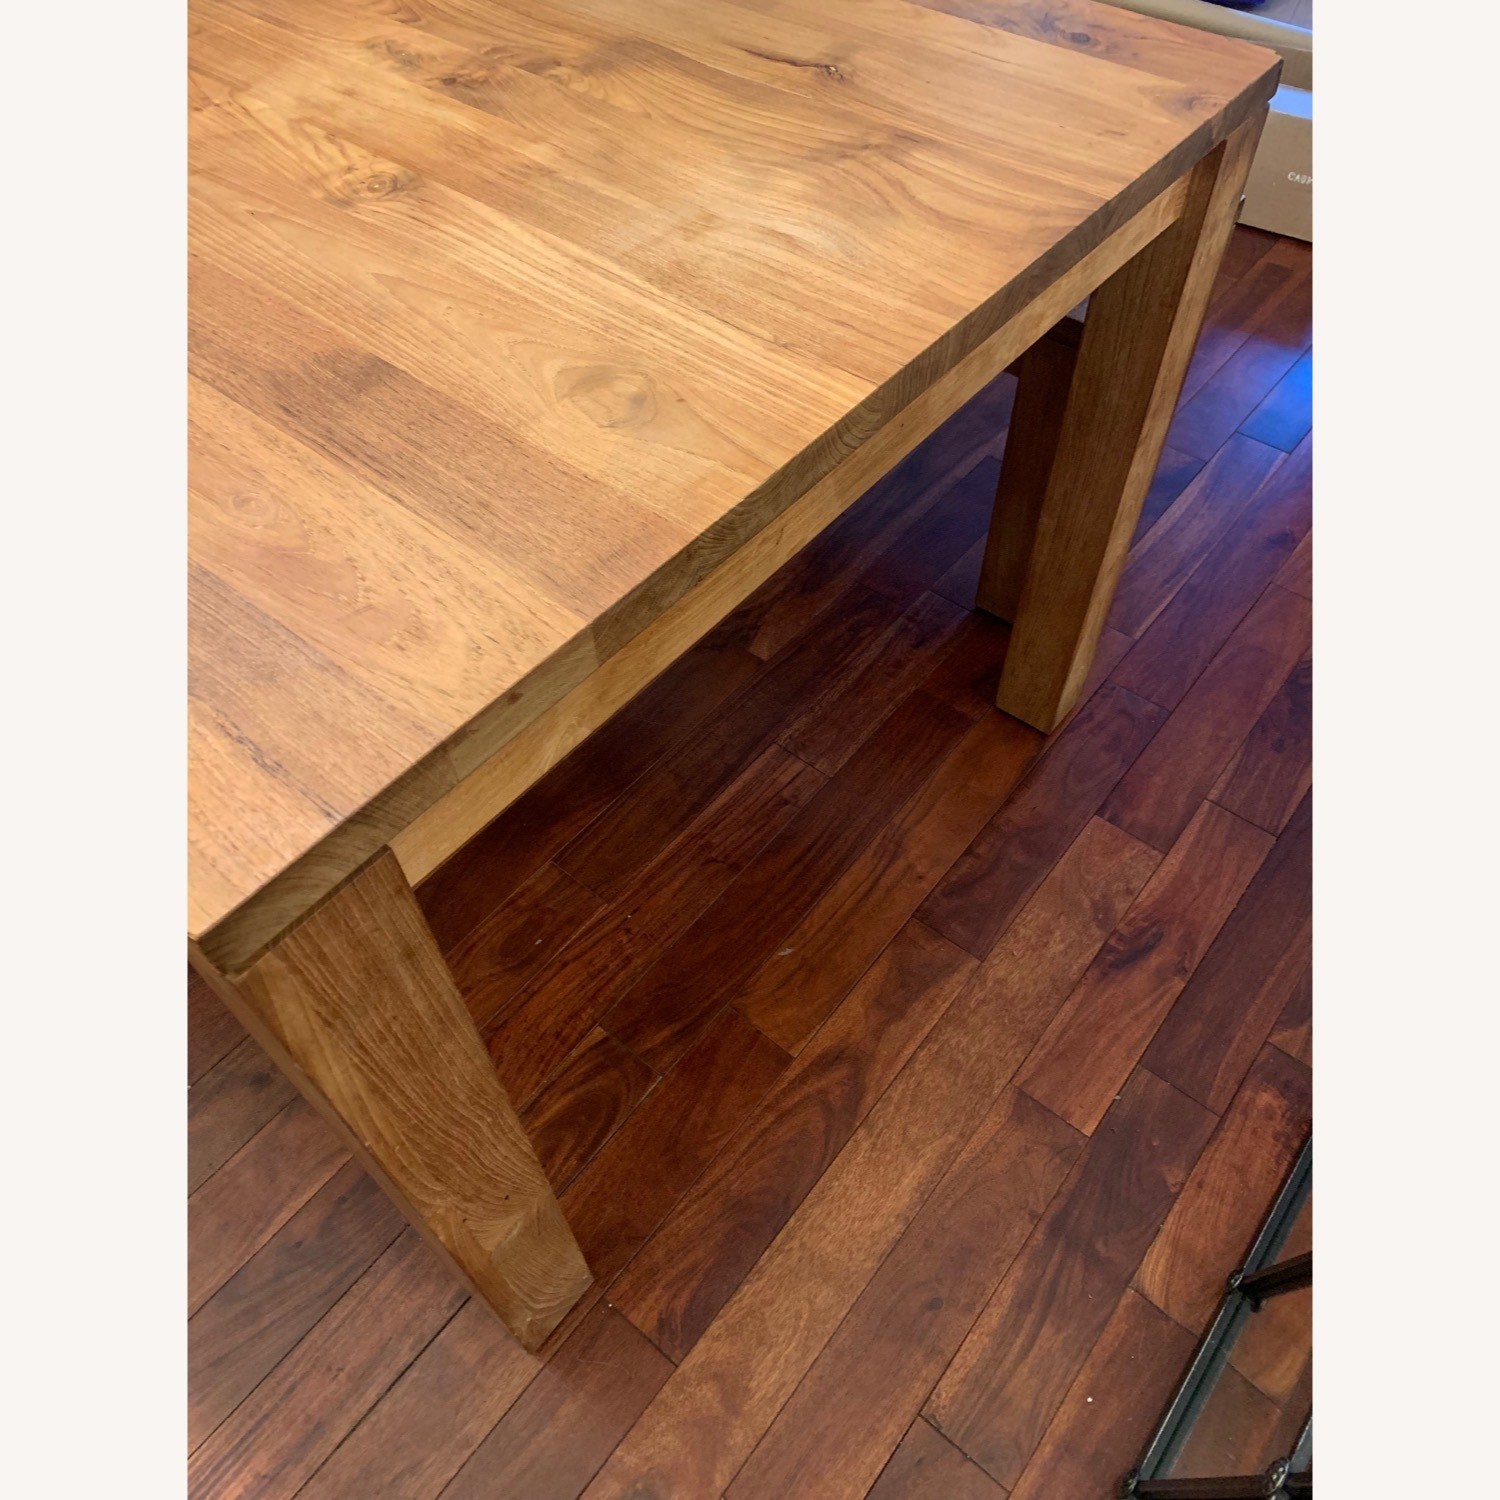 Crate & Barrel Pacifica Dining Table - image-6